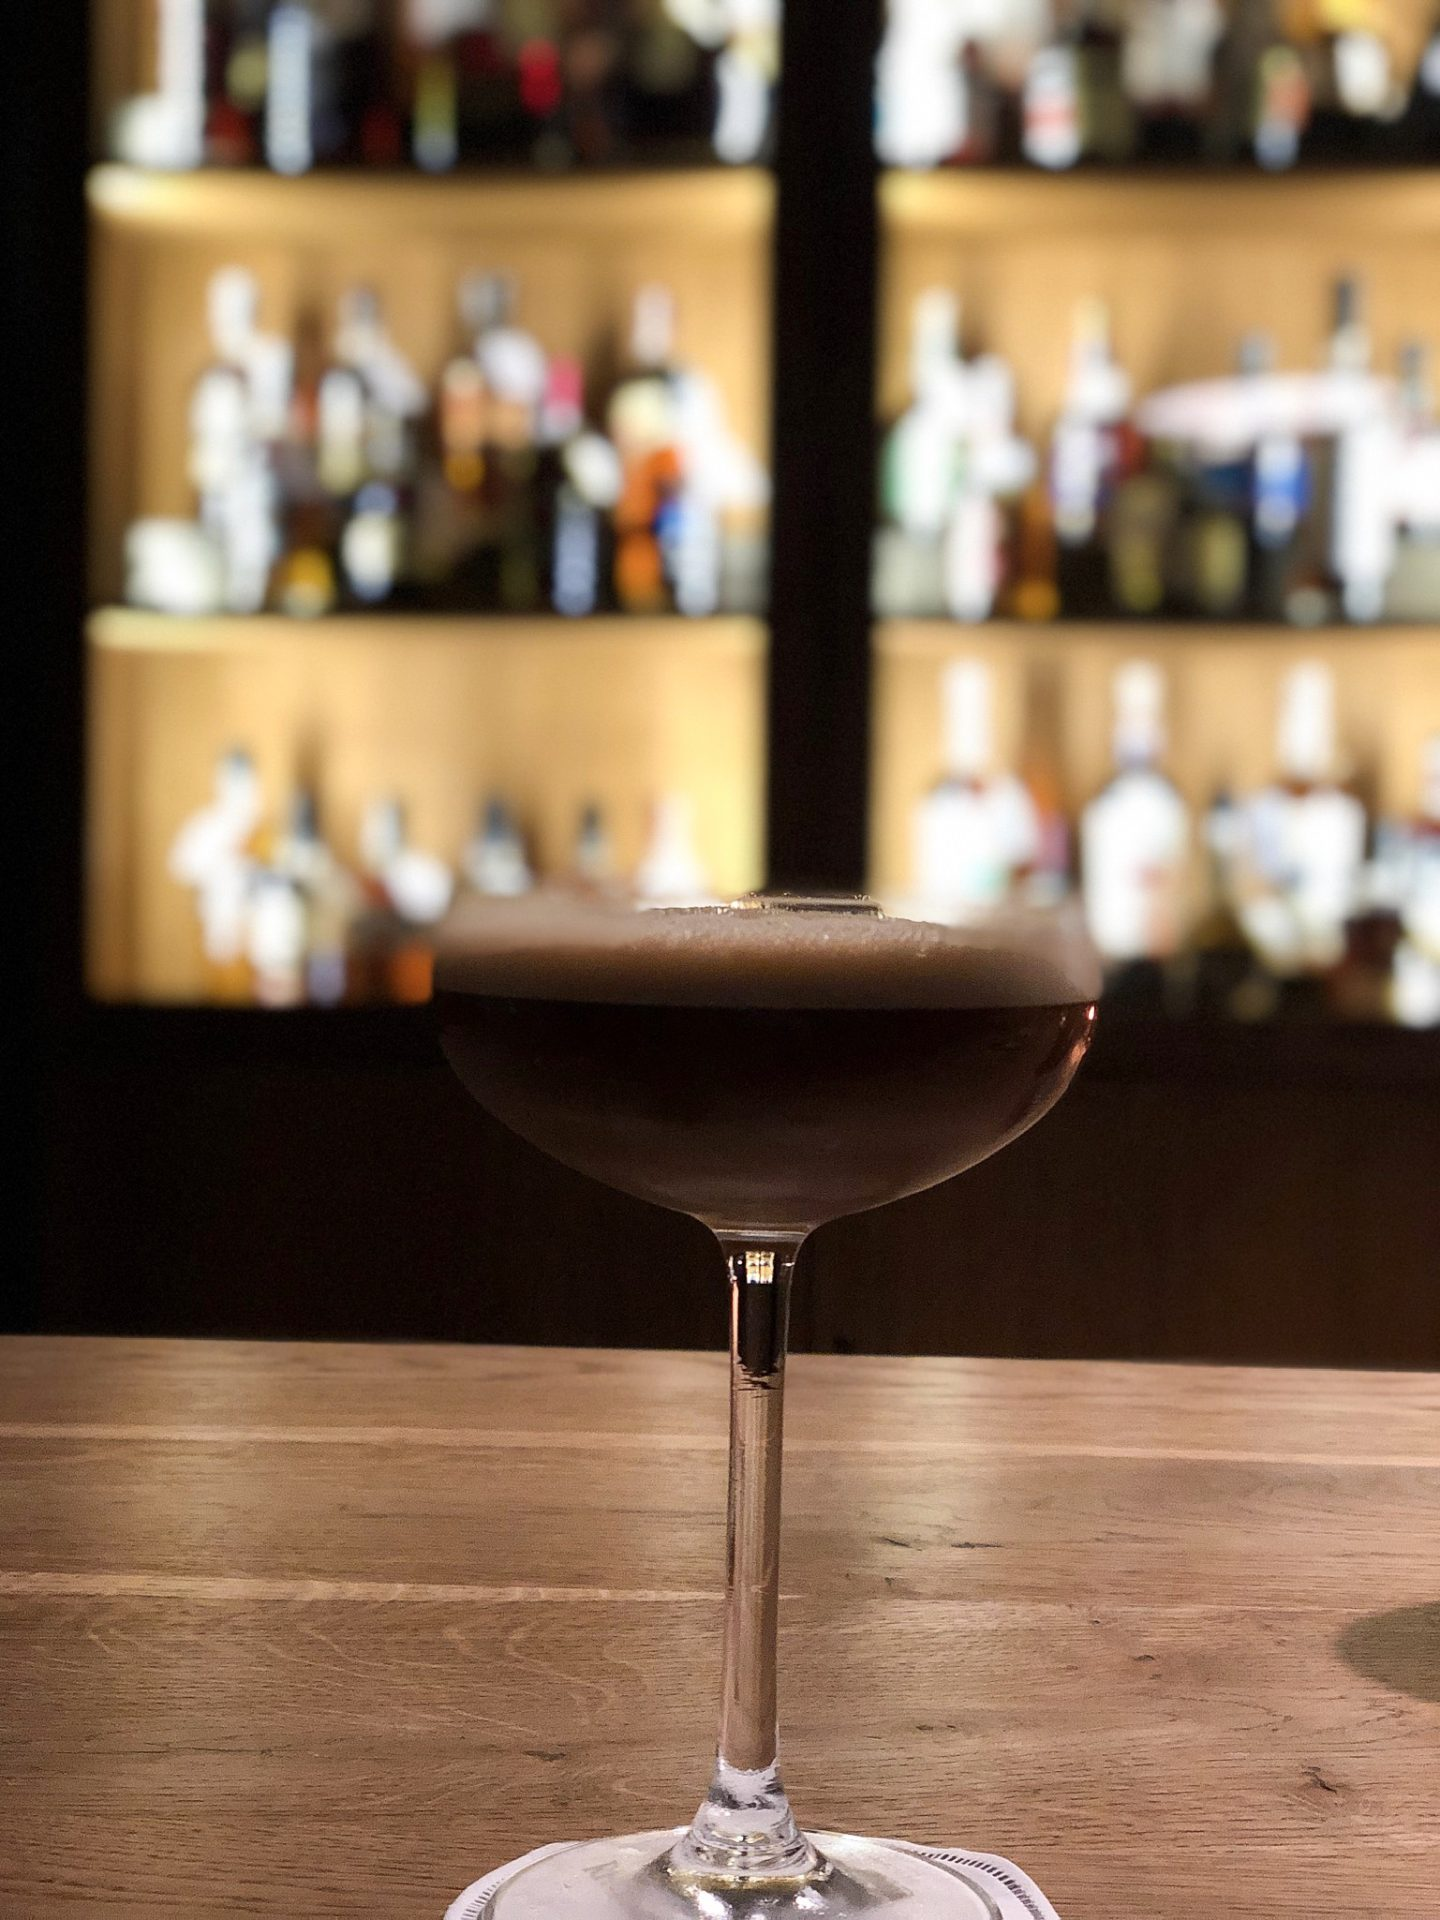 vilnius bars: espresso martini on a wooden table in a low lit bar